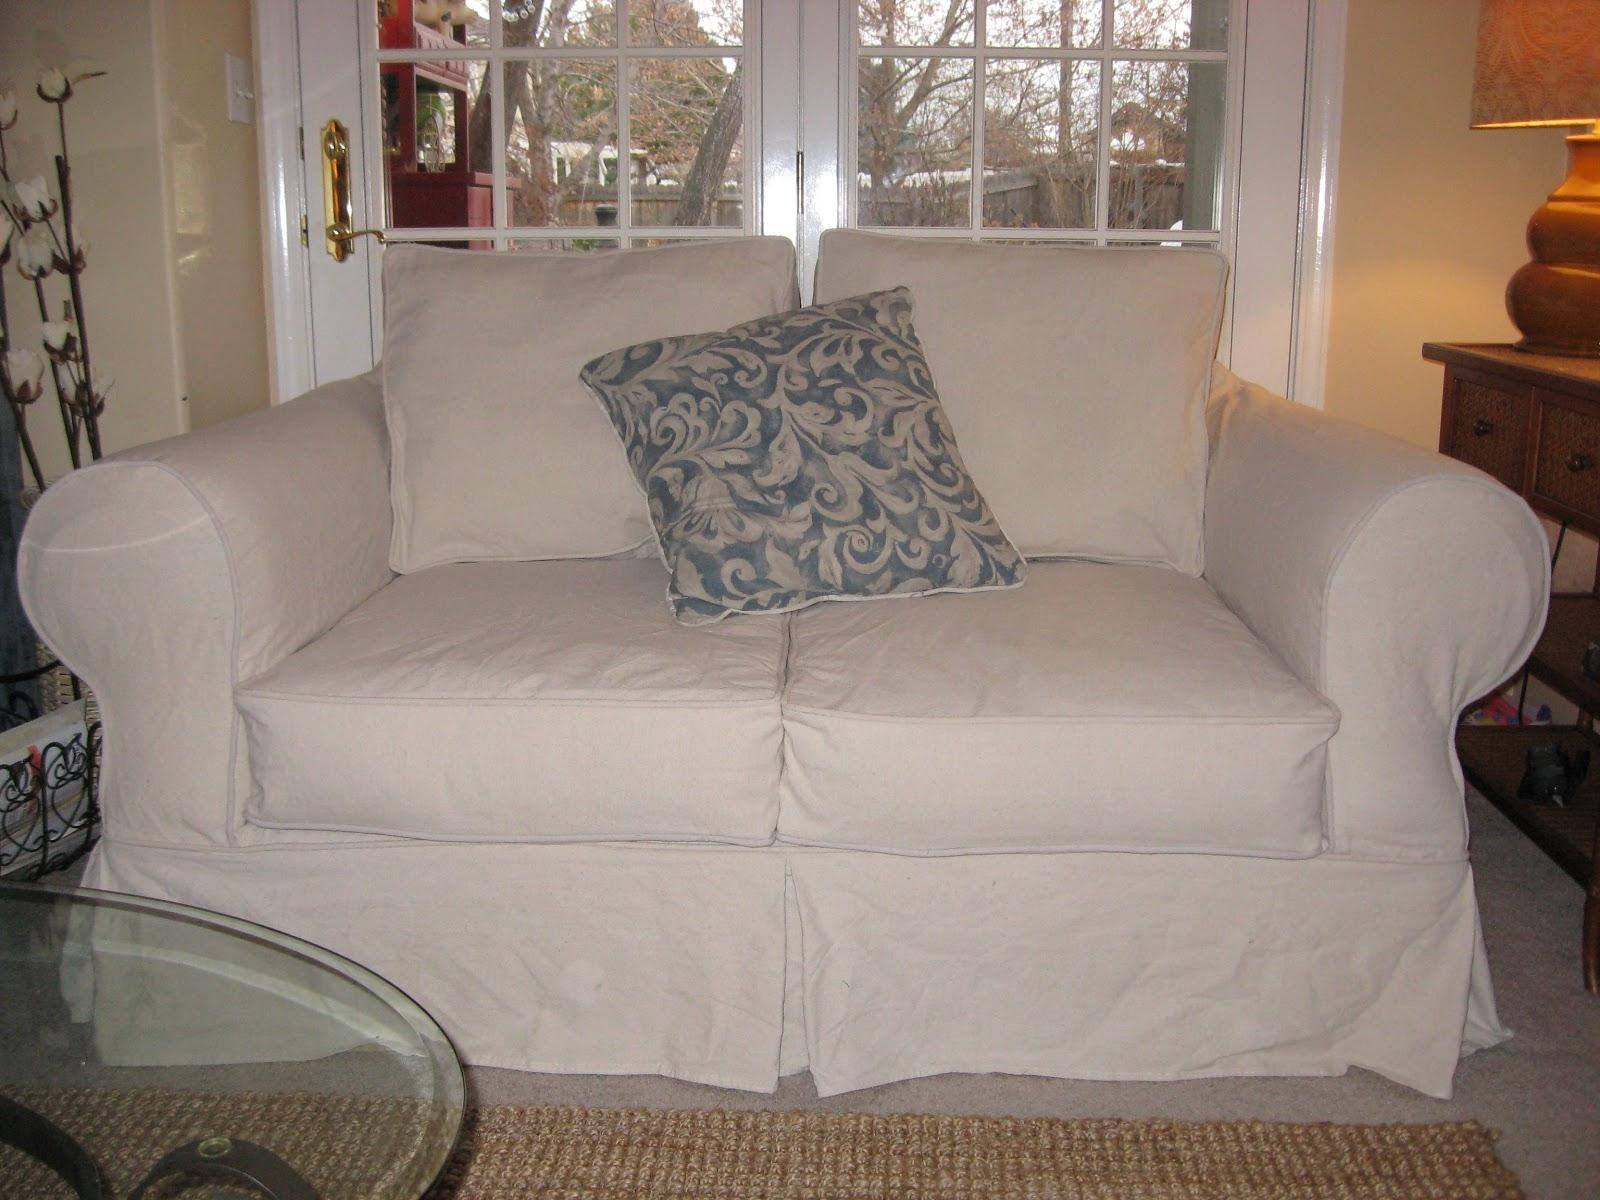 Furniture: Couch Covers At Walmart To Make Your Furniture Stylish With Regard To Walmart Slipcovers For Sofas (Image 5 of 20)